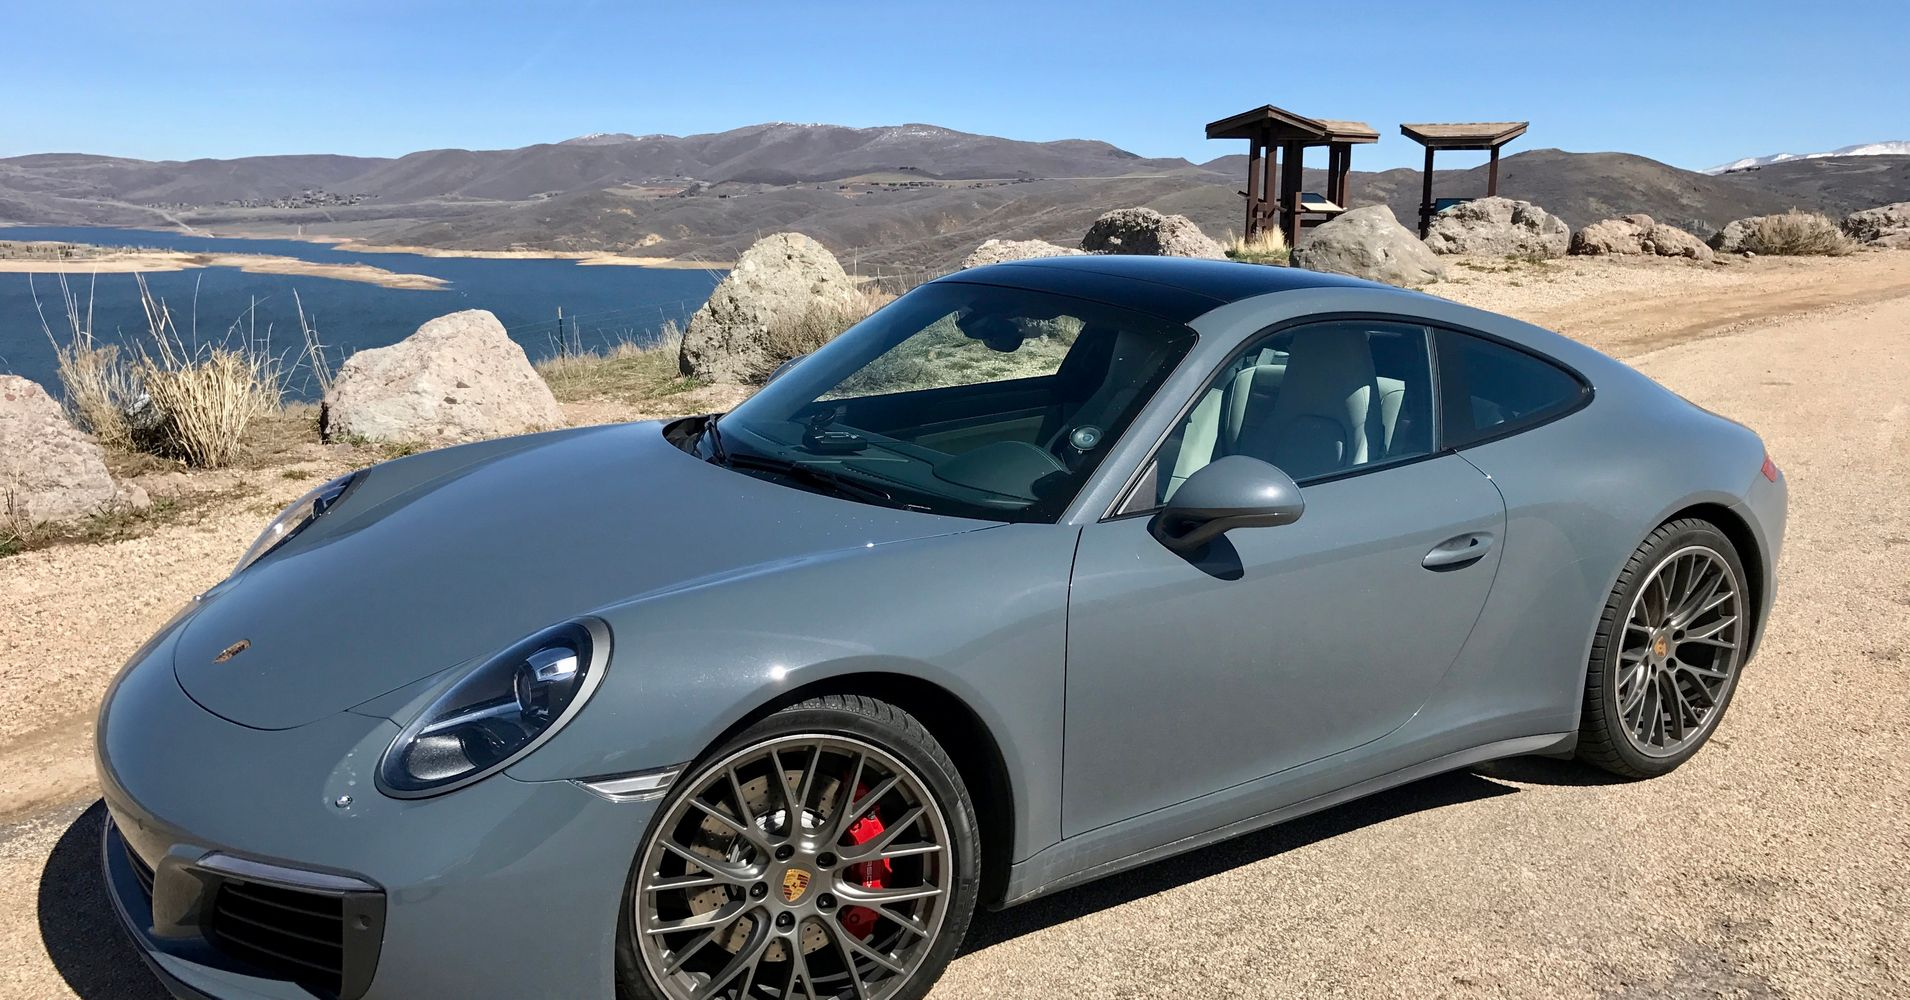 How To Buy A Porsche 911 When Passion And Reason Collide